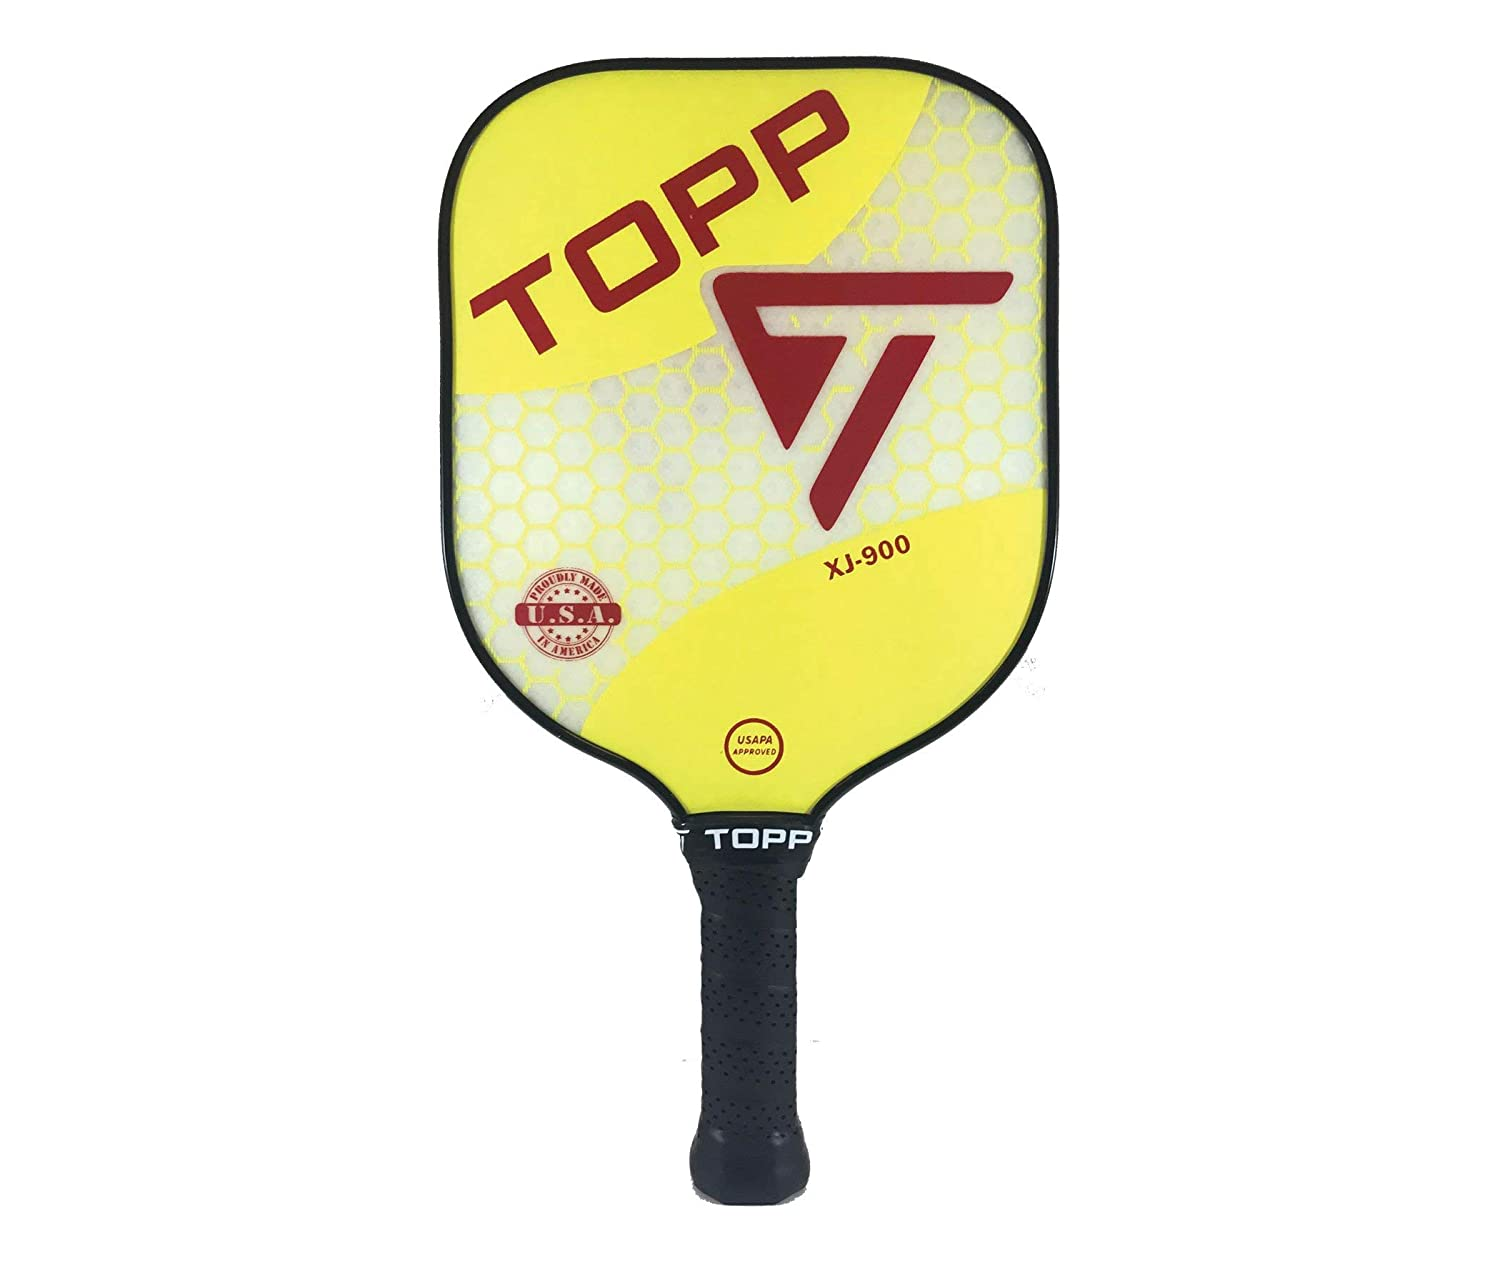 Topp PickleballパドルXJ 900 Topp Composite B07DB34ZCM イエロー/レッド 900 イエロー Composite/レッド, ONLY ONE STYLE:a8a15044 --- lembahbougenville.com